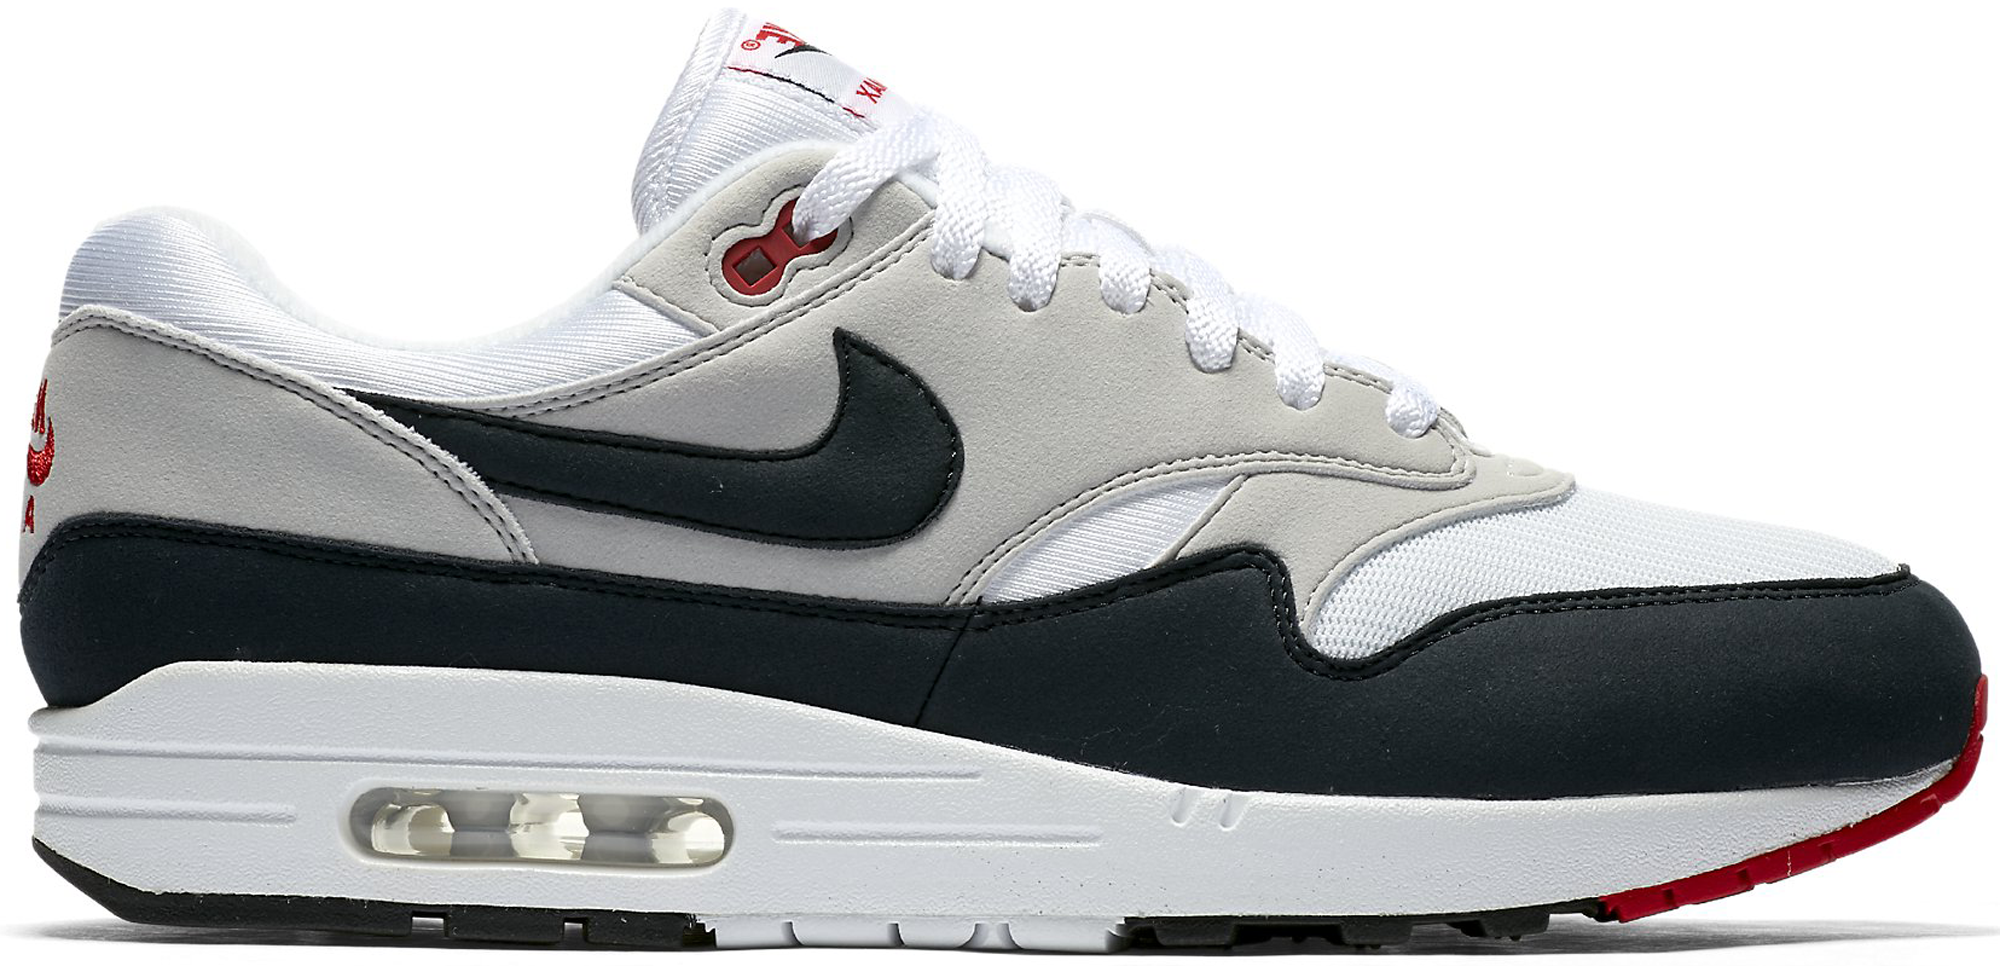 new product 8bc6f e978c ... denmark air max 1 anniversary obsidian 908375 104 f3d53 30d51